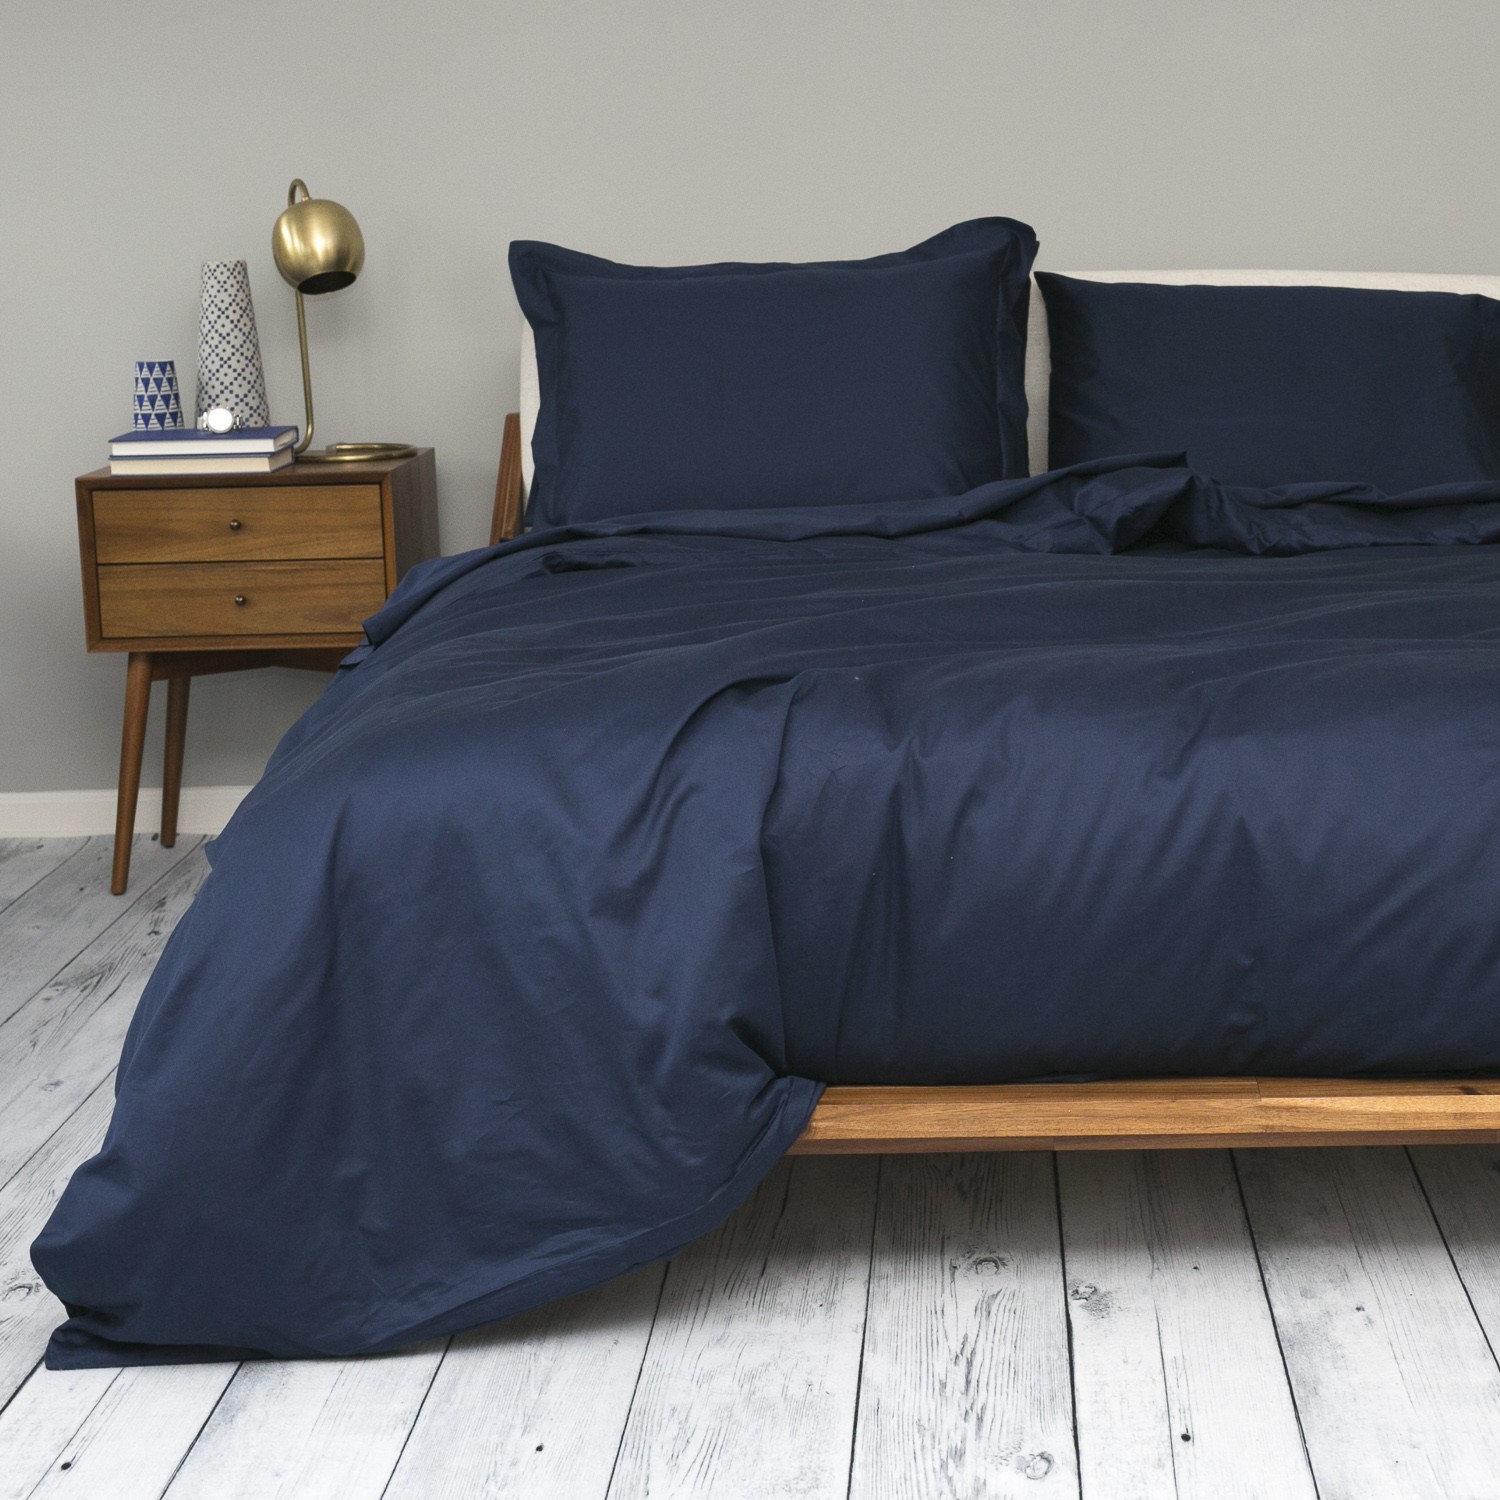 covers duvet cover decor hq home navy ideas single cheap